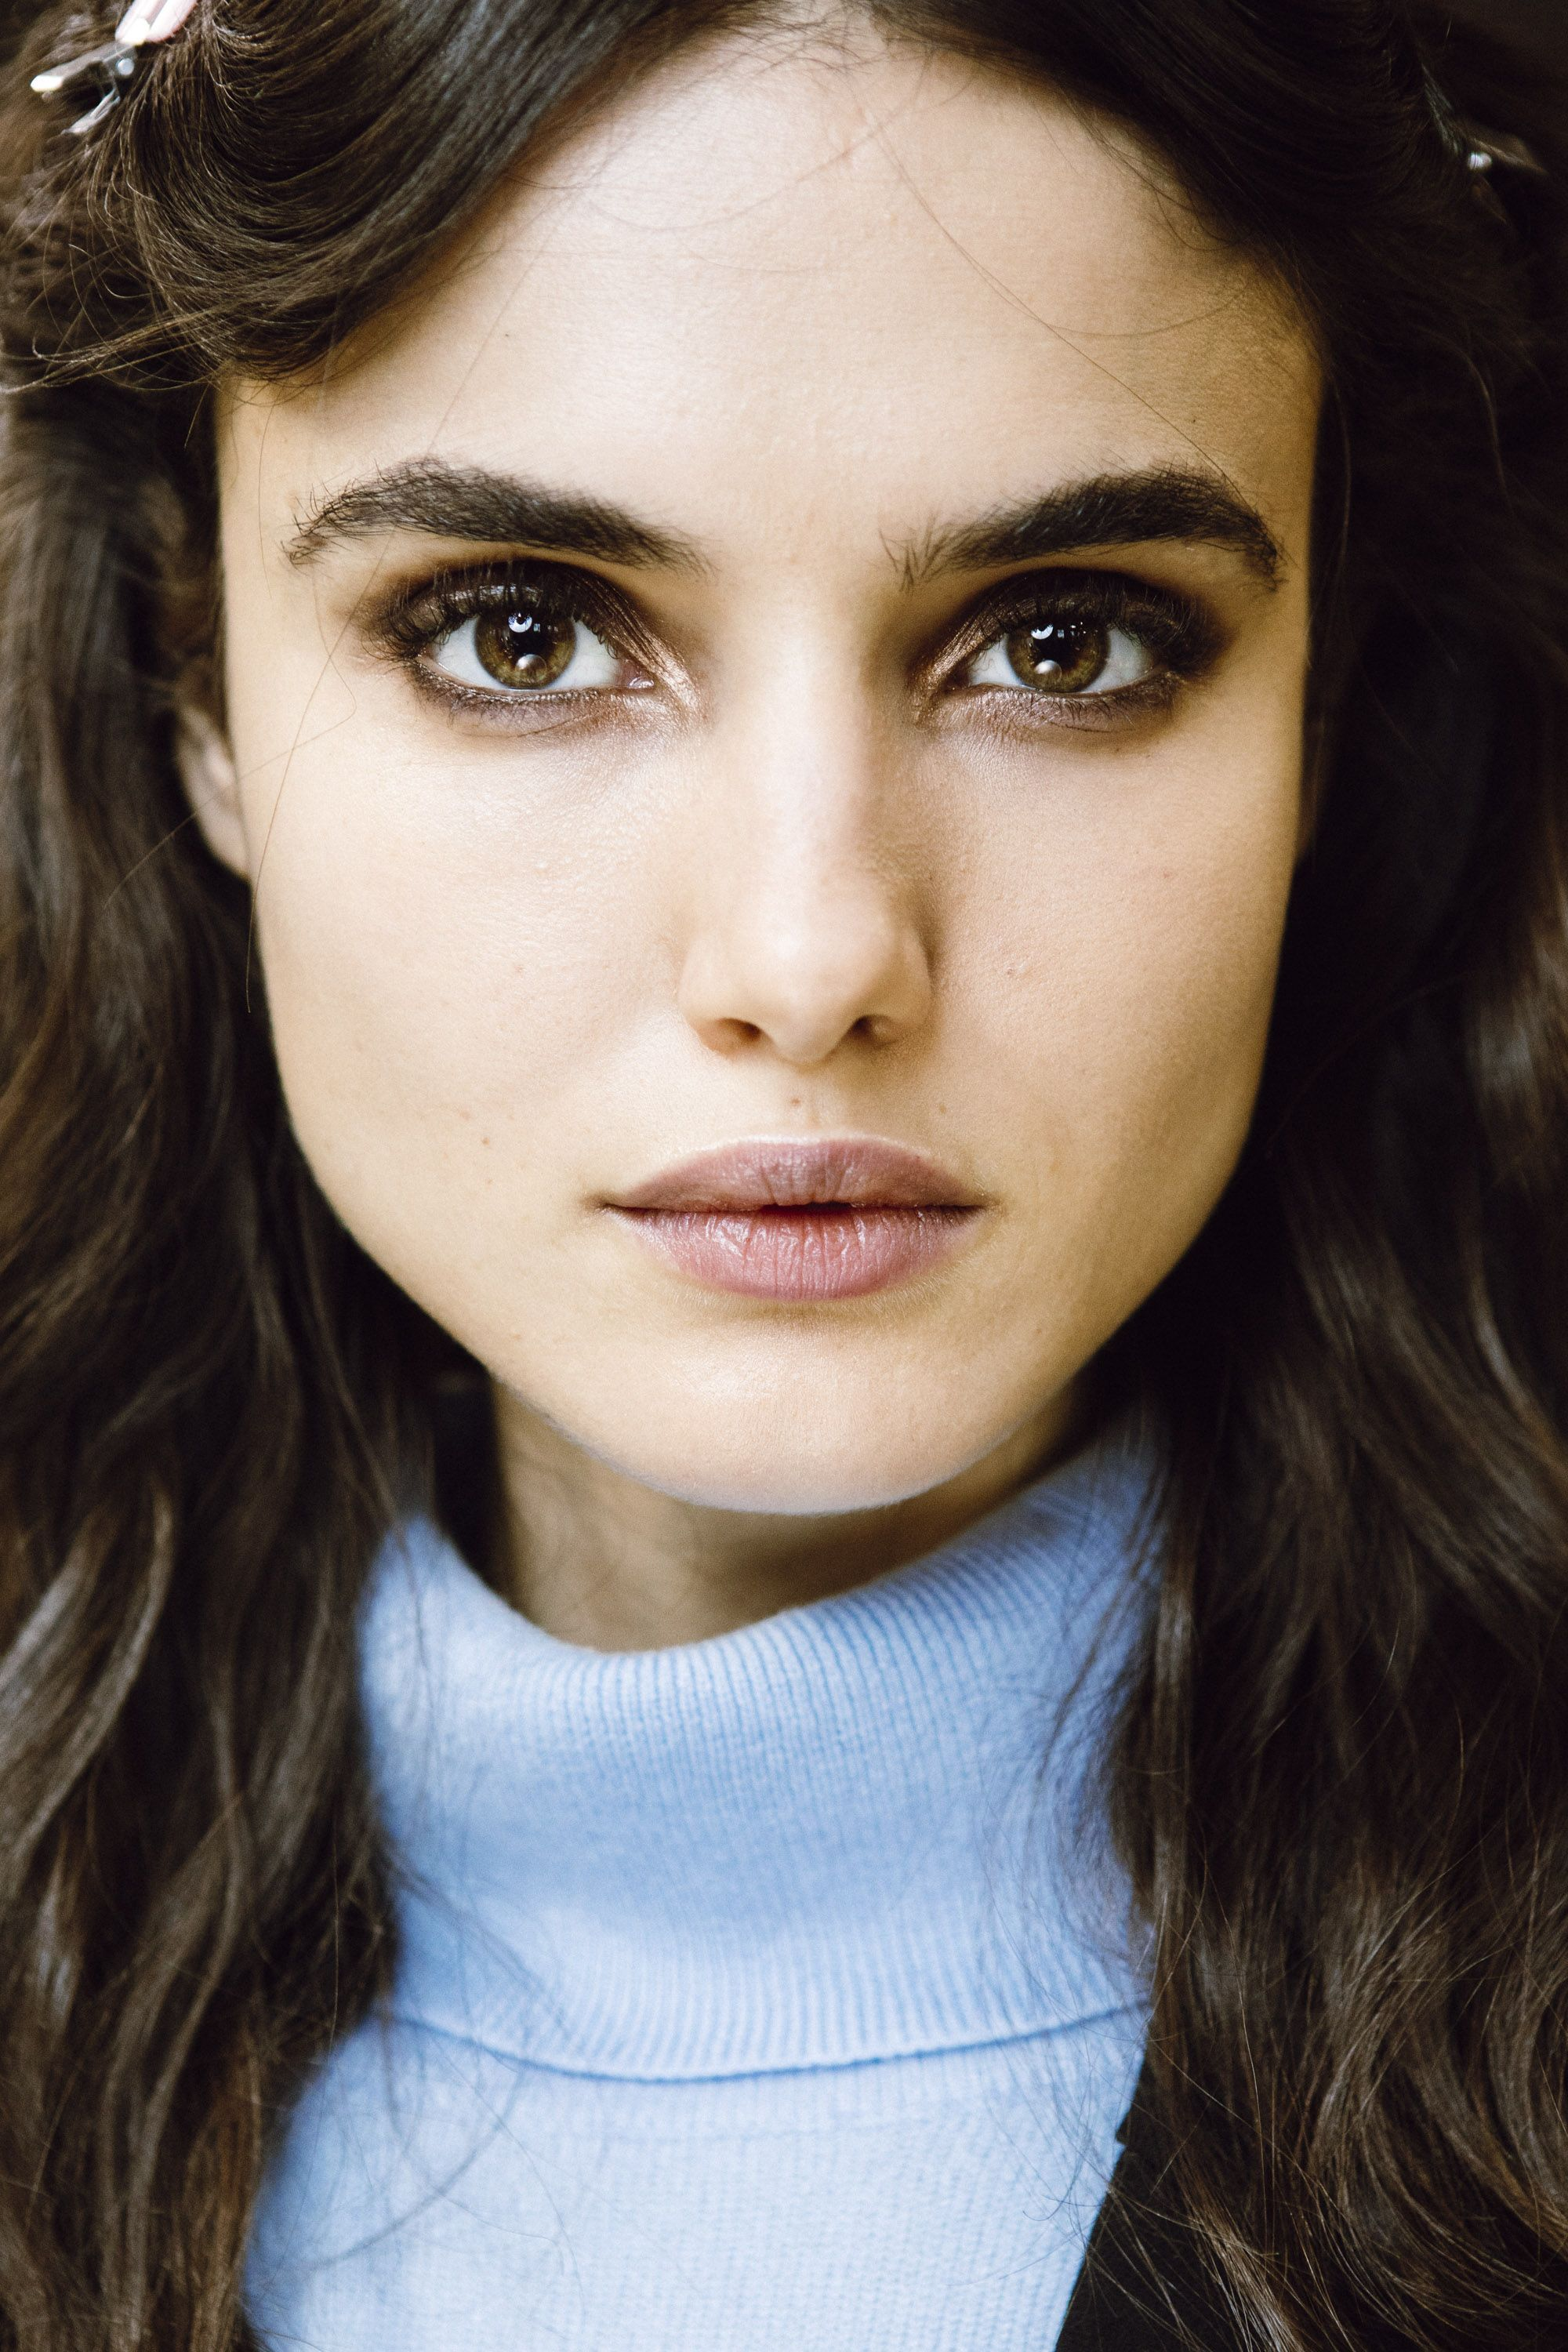 The 25 Best Thick Eyebrows in Hollywood (And How to Get